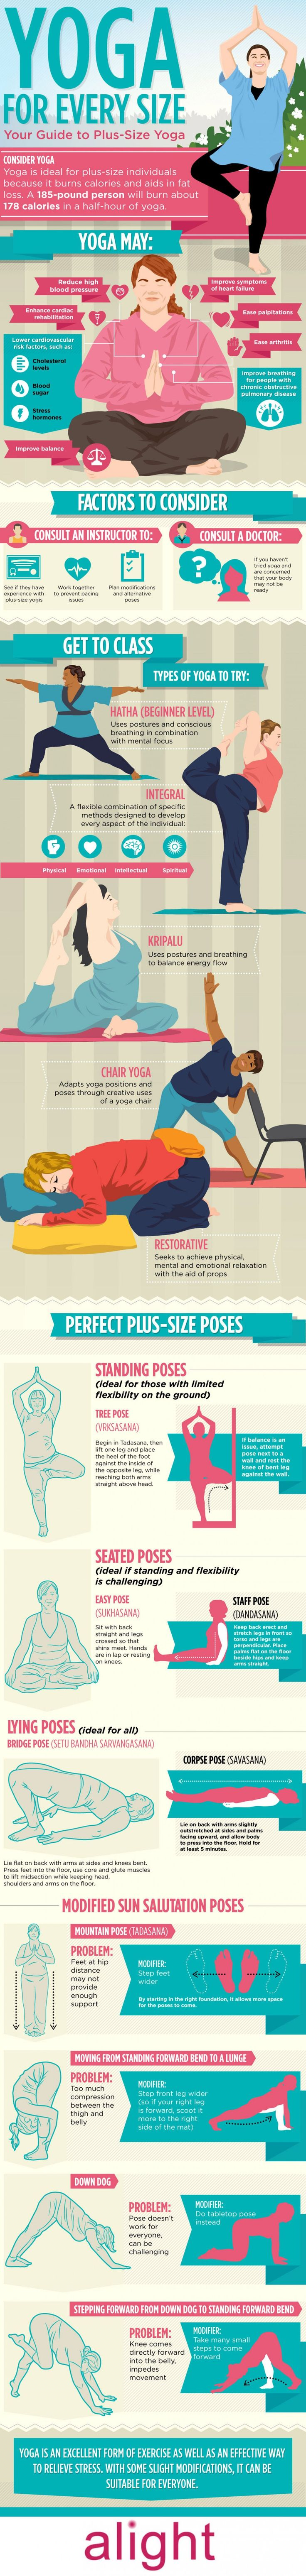 Yoga for Every Size: Your Guide to Plus Size Yoga Infographic